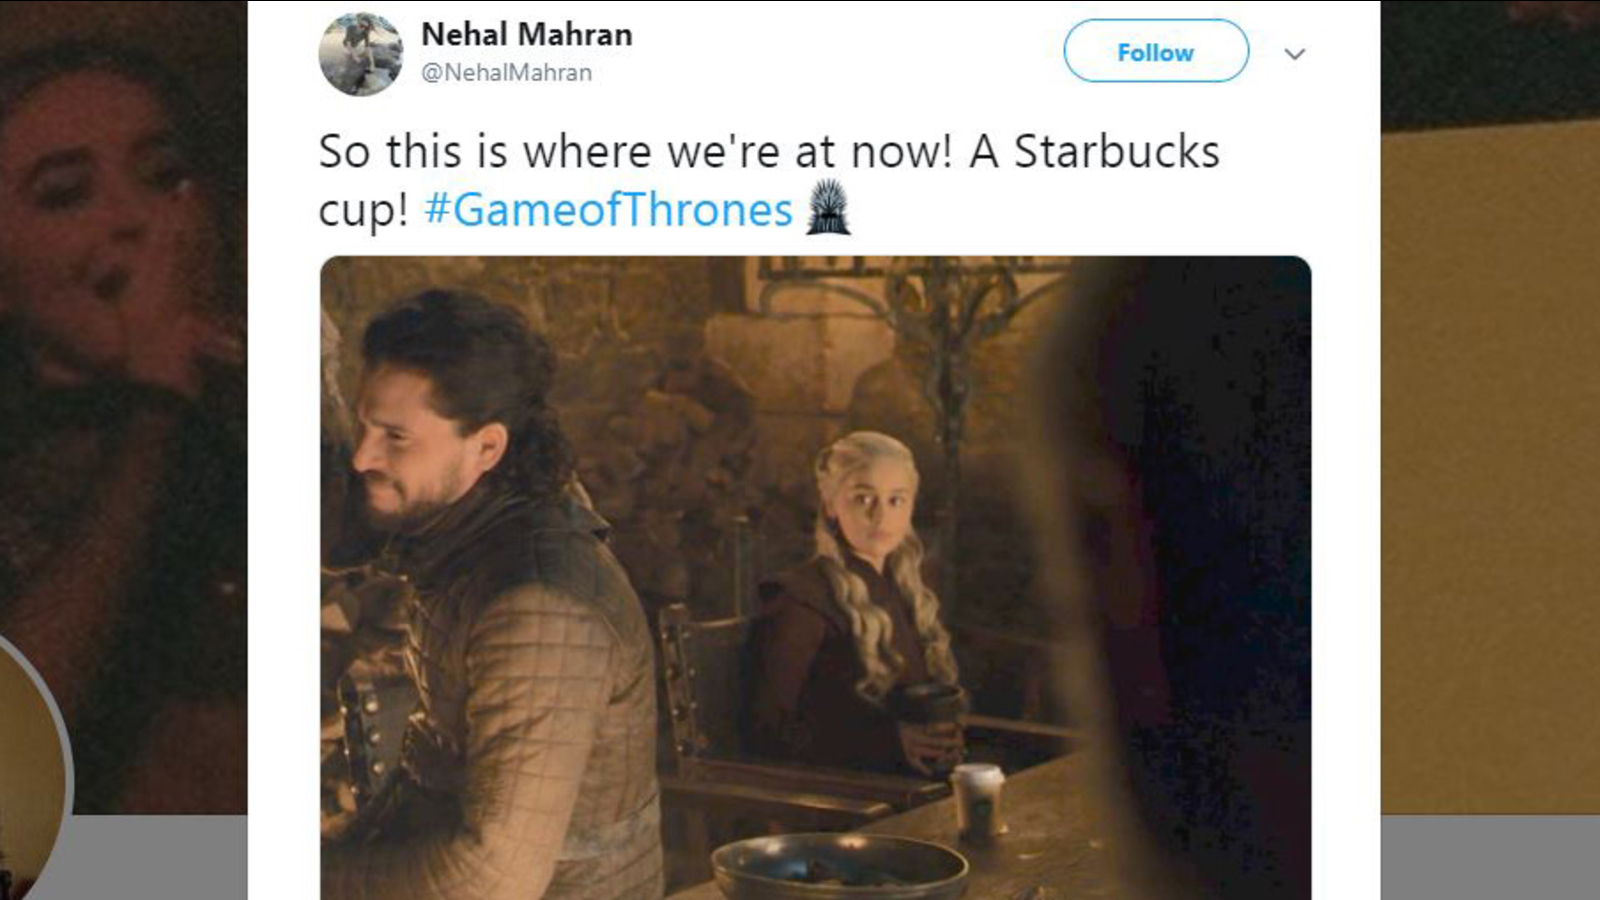 'Game of Thrones' fans spot Starbucks cup in scene